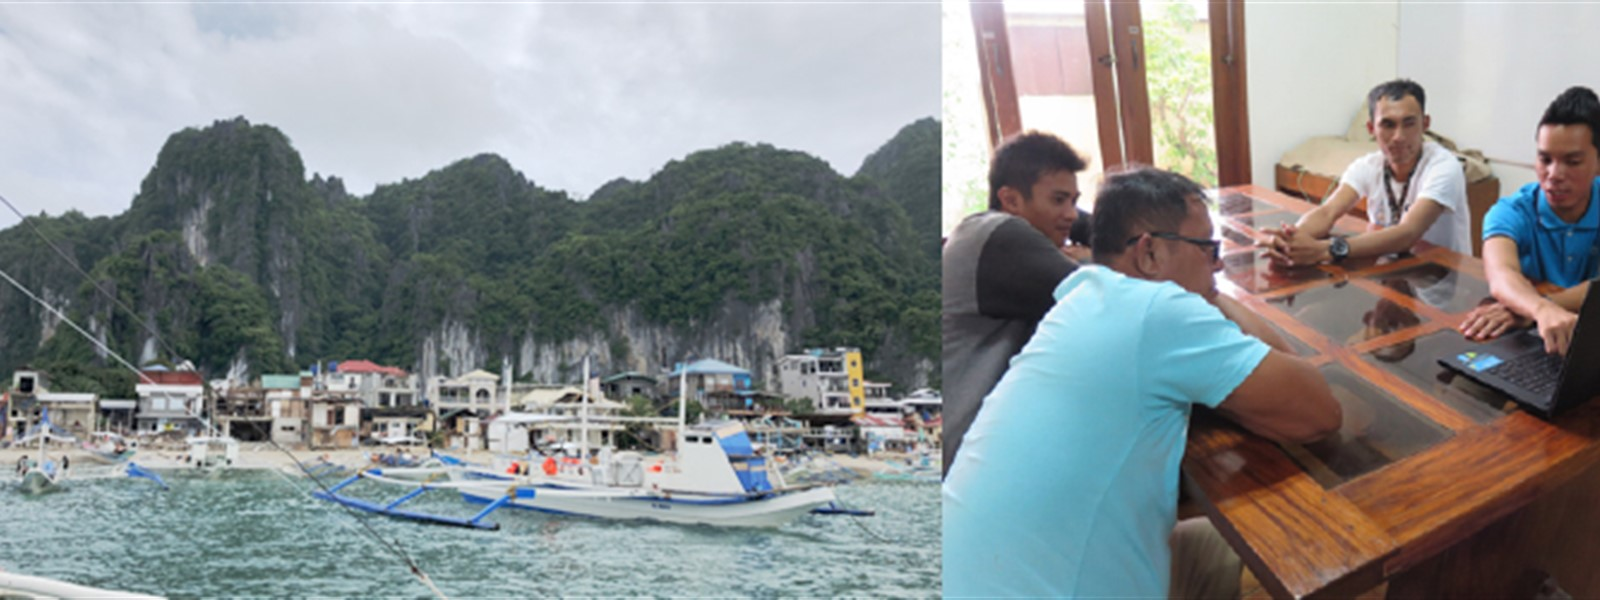 Picture of boats in the ocean in El Nido, next to a picture of the Green Fins team having a meeting.